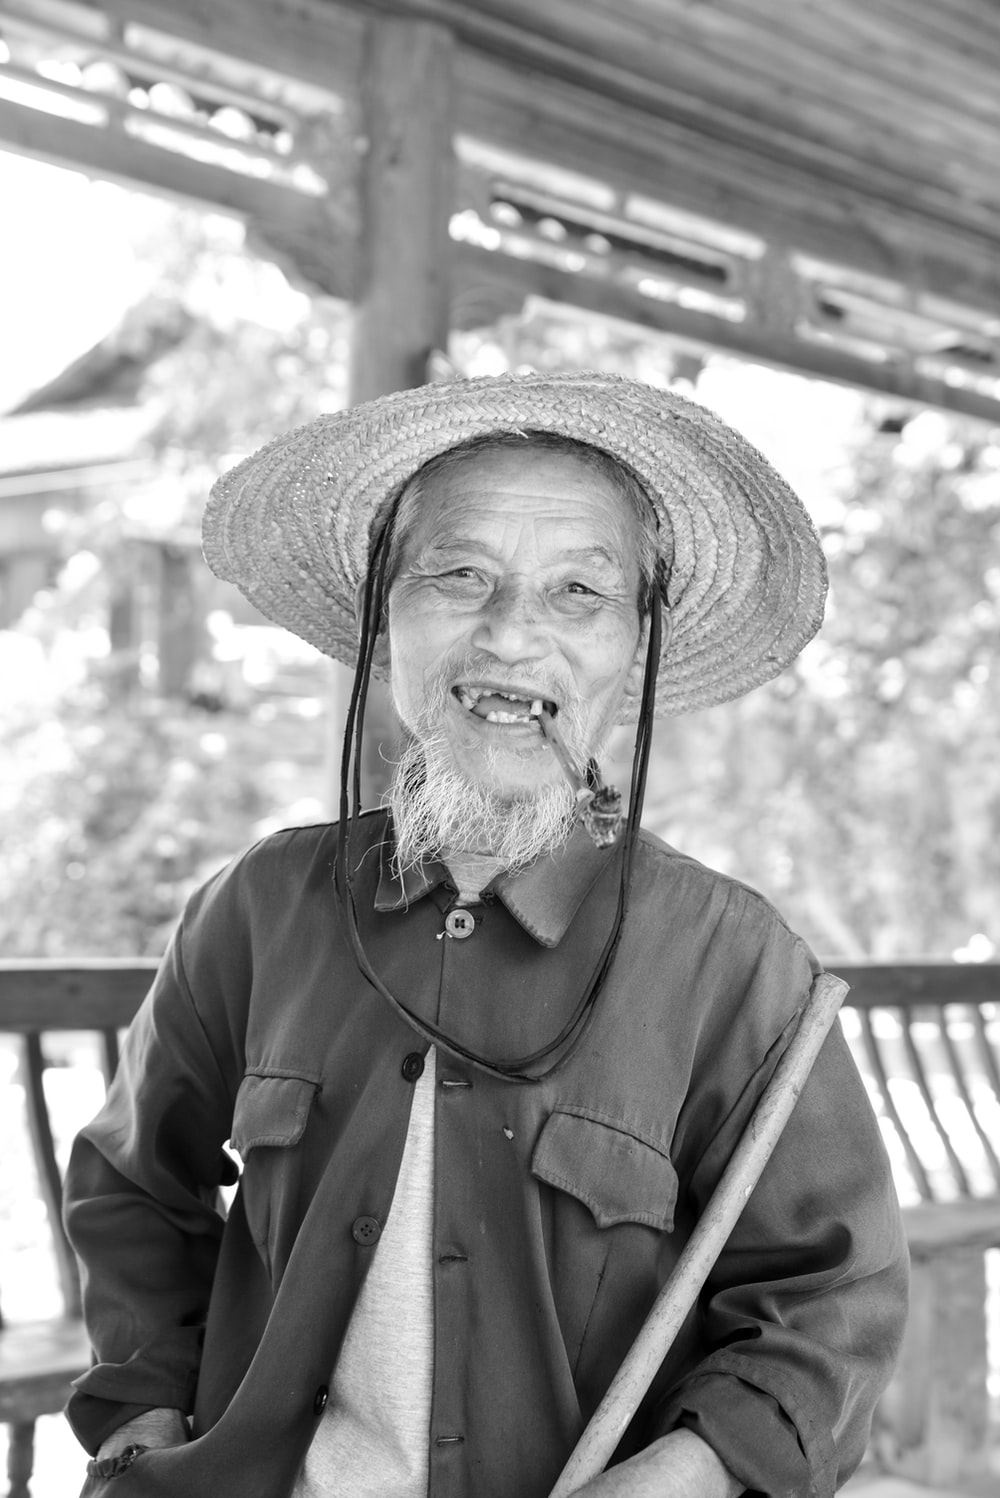 grayscale portrait photography of a smiling man